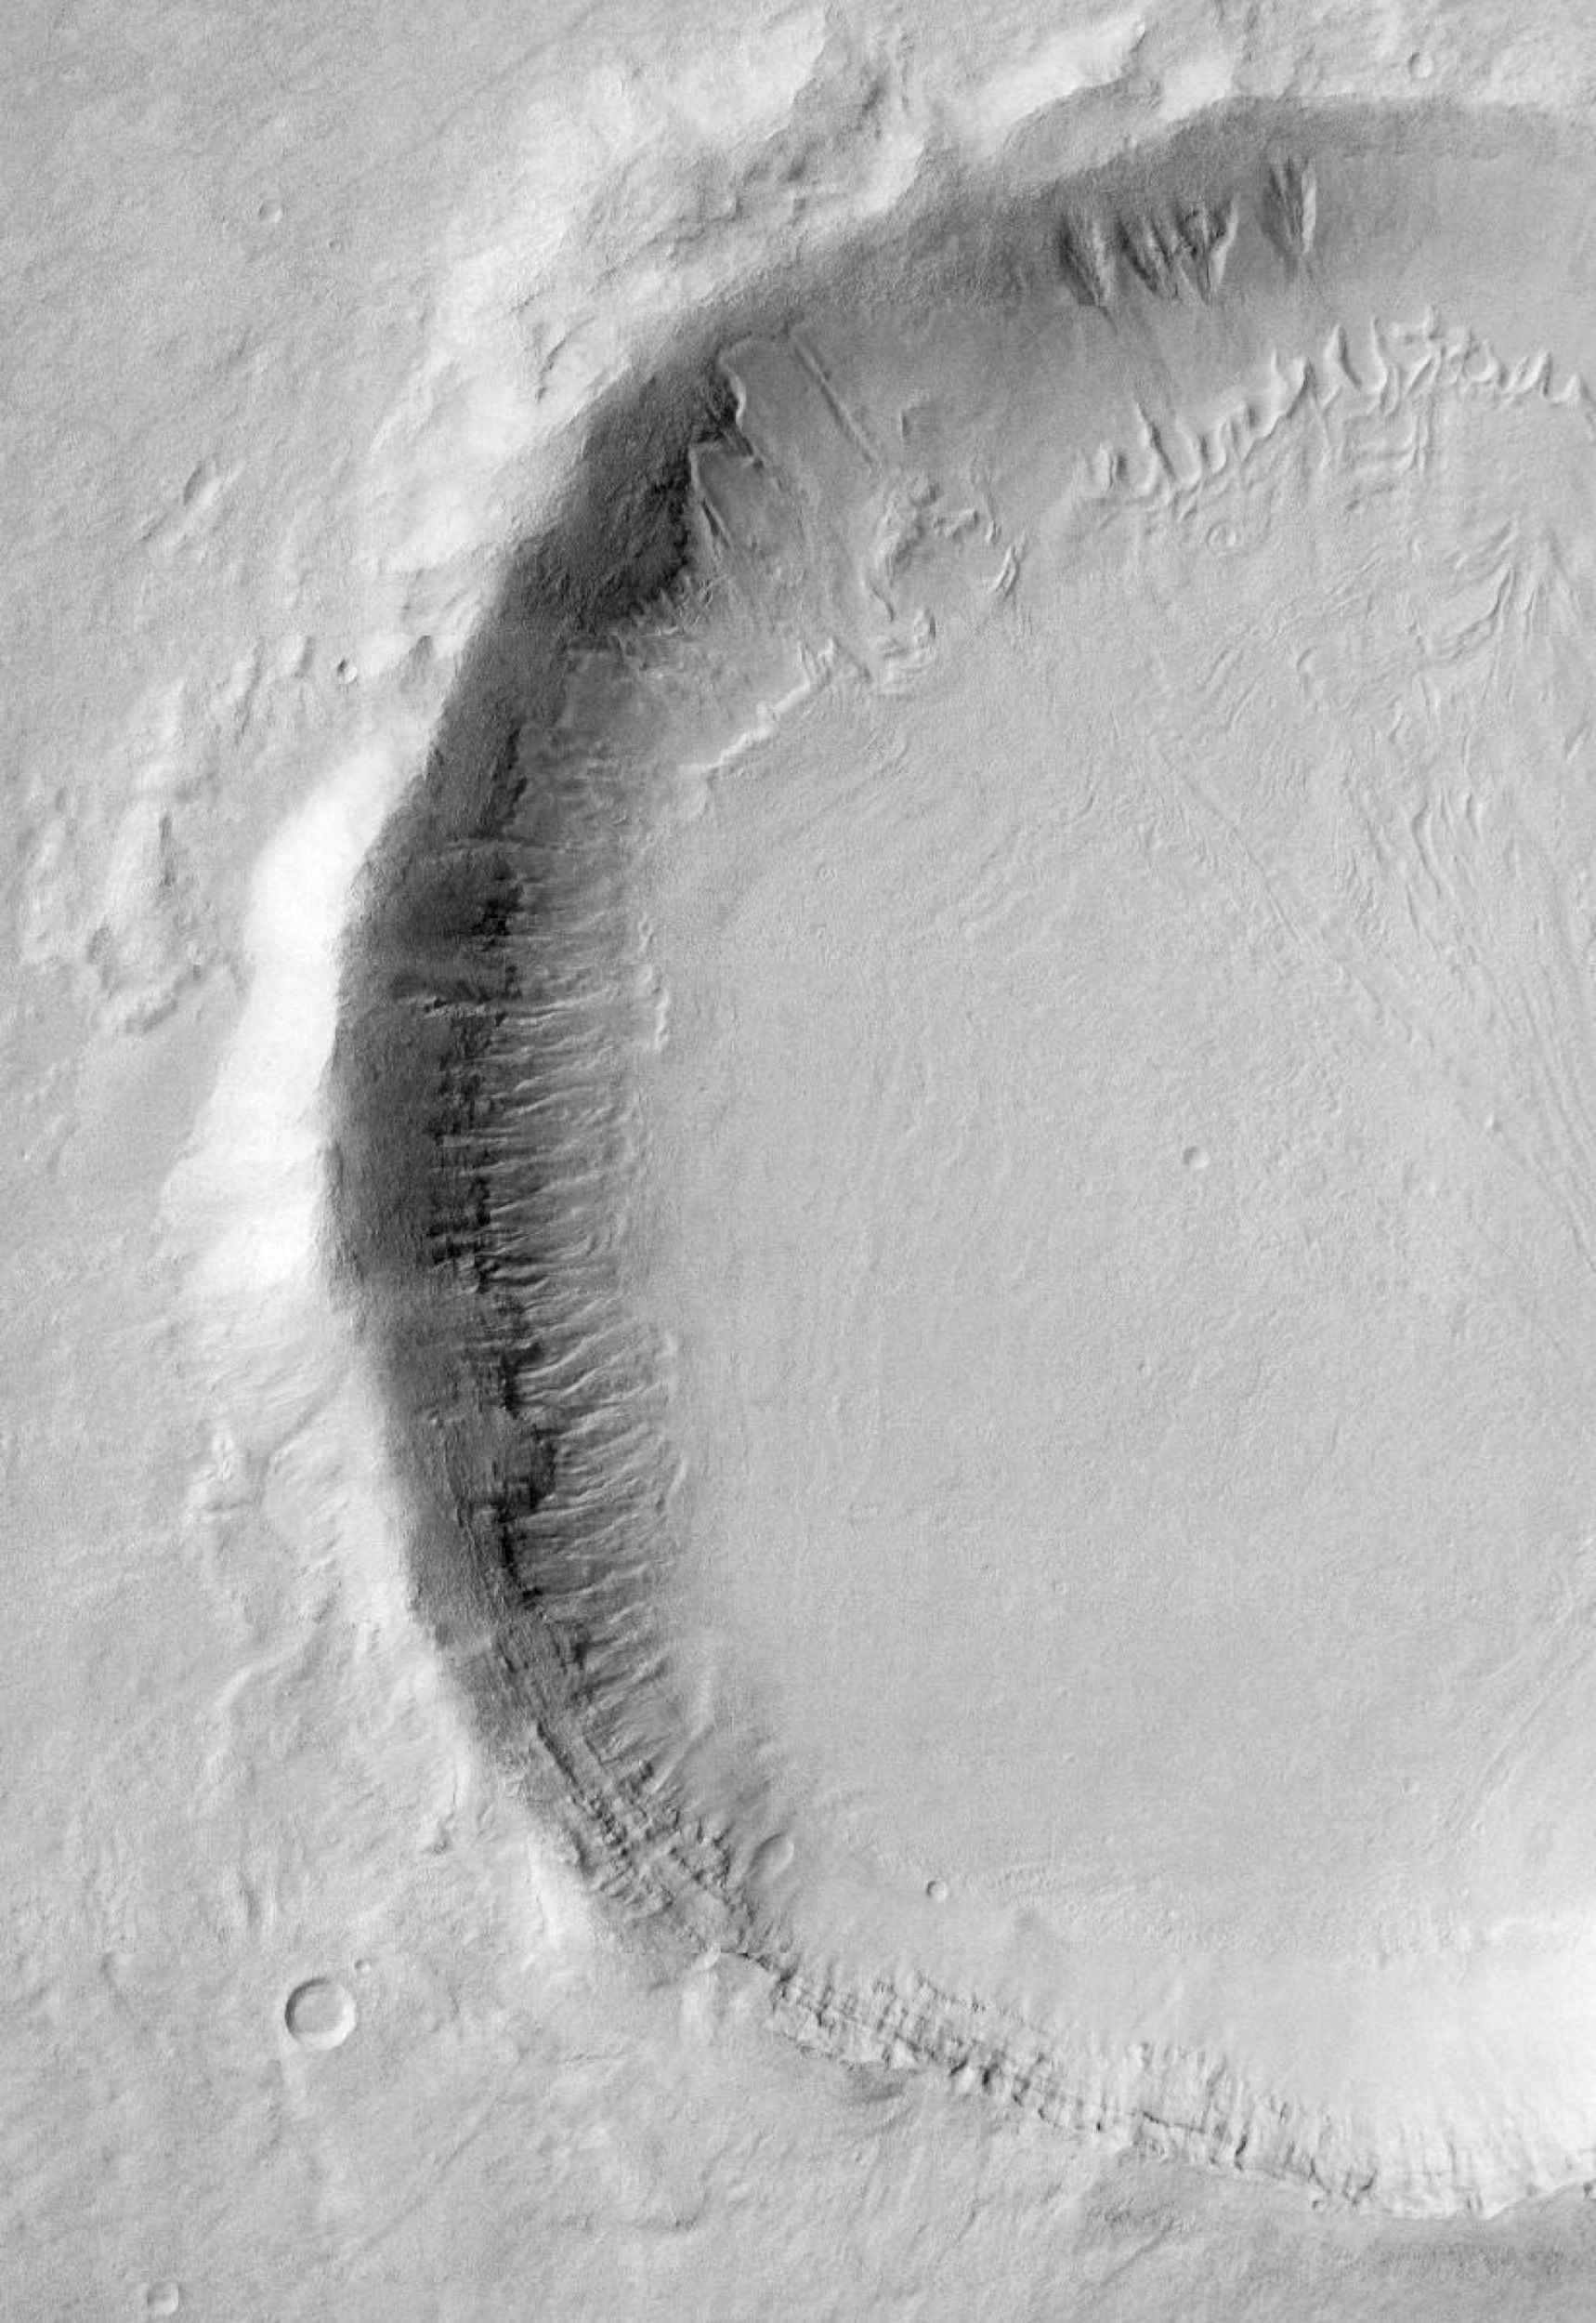 This visible-light image, taken by NASA's Mars Odyssey spacecraft, indicates that gullies on Martian crater walls may be carved by liquid water melting from remnant snow packs.